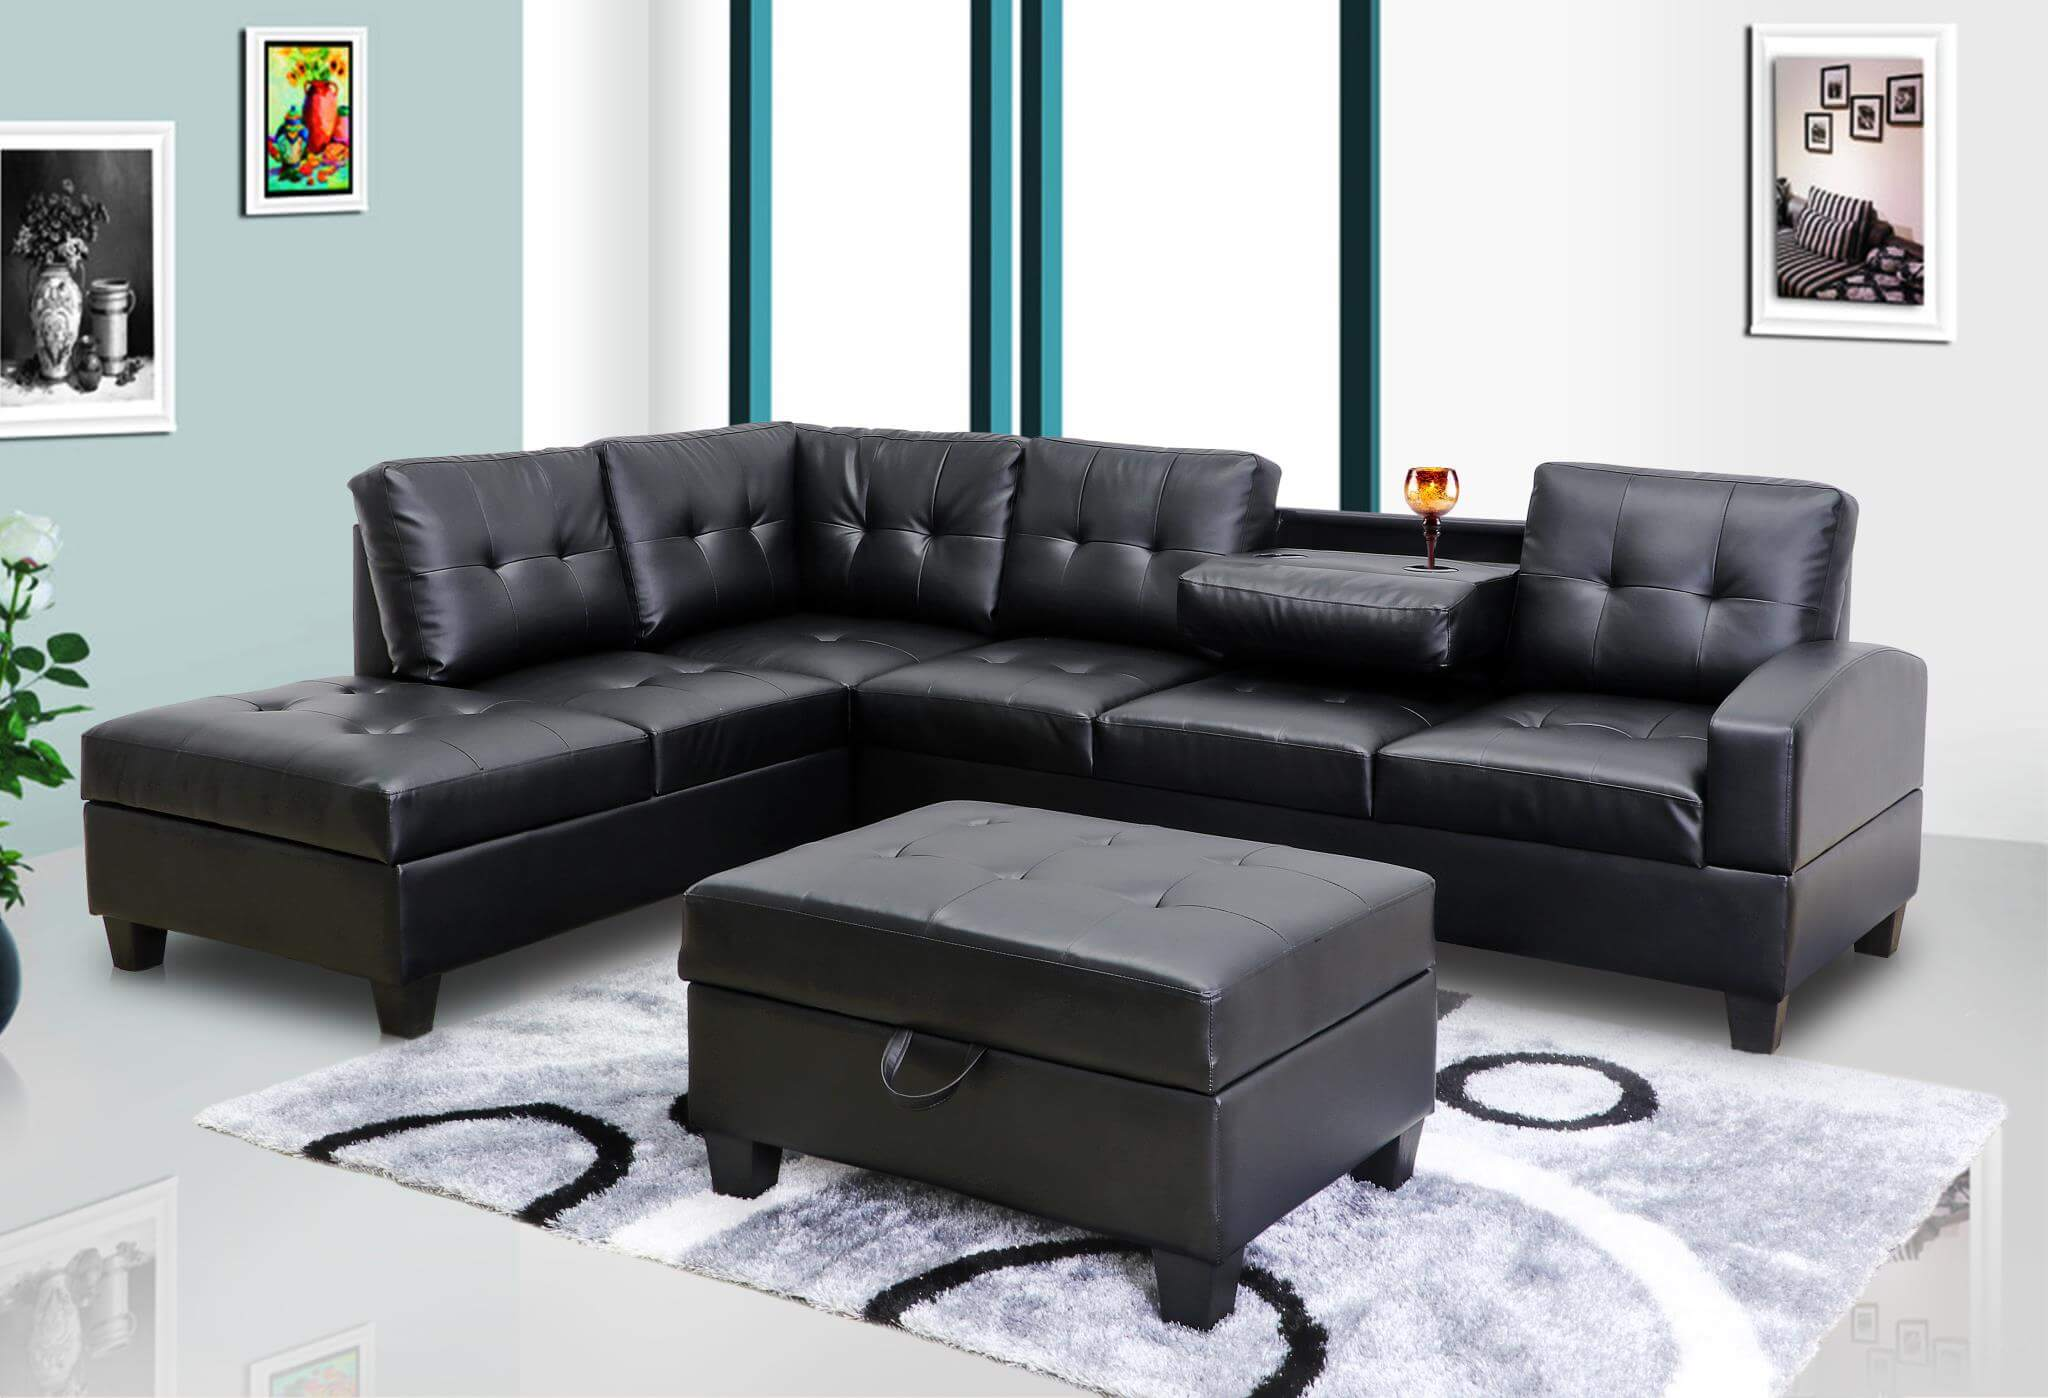 Stupendous U5400 Black Sectional W Free Ottoman Gmtry Best Dining Table And Chair Ideas Images Gmtryco